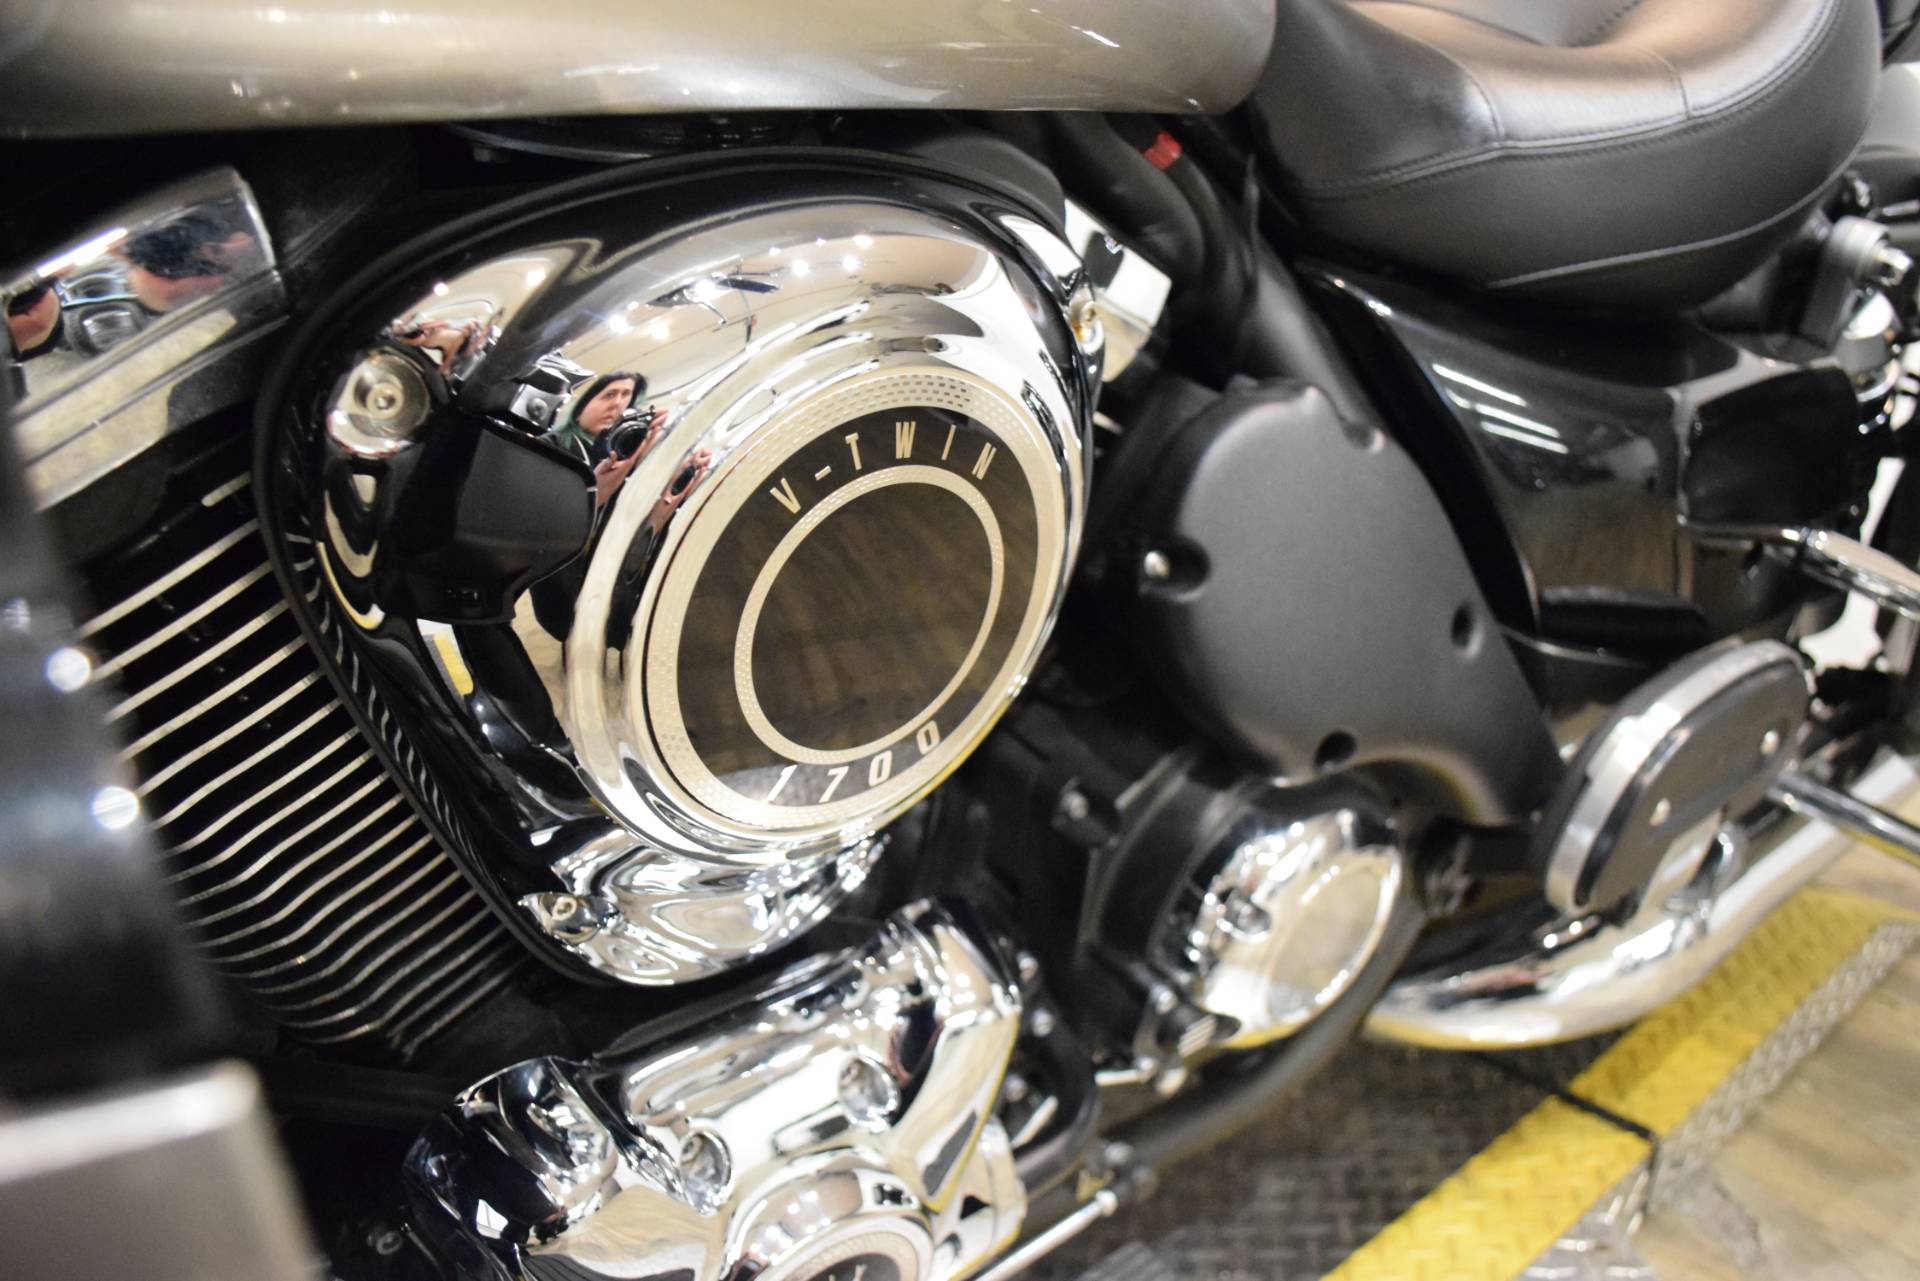 2016 Kawasaki Vulcan 1700 Voyager ABS in Wauconda, Illinois - Photo 19